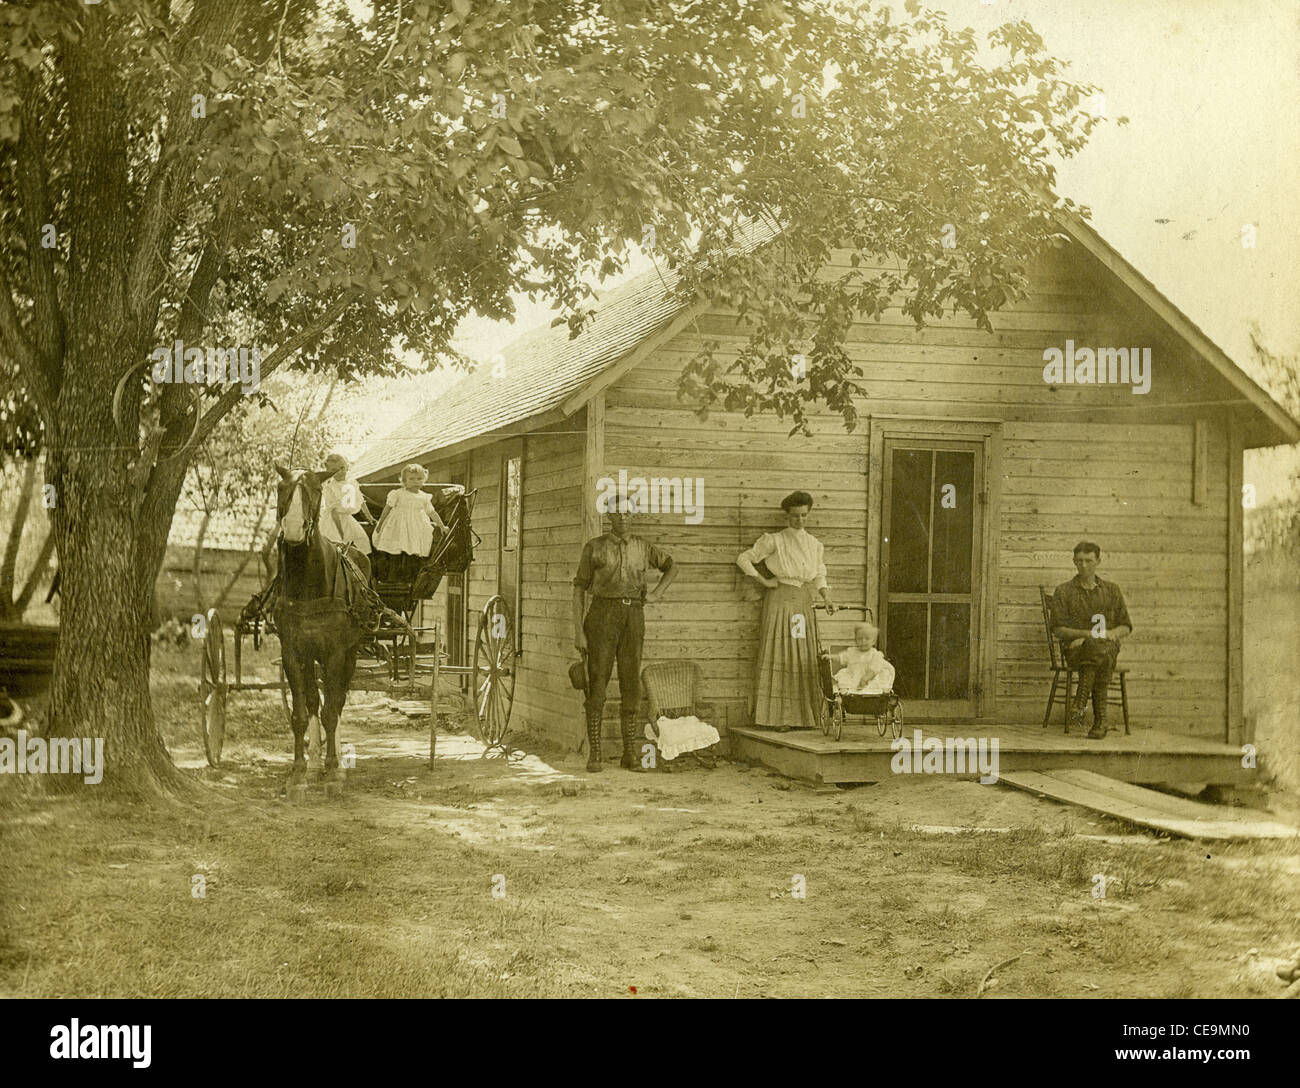 Homesteaders with horse and buggy standing in front of wooden house in 1916 Illinois pioneers farmers midwest homestead - Stock Image